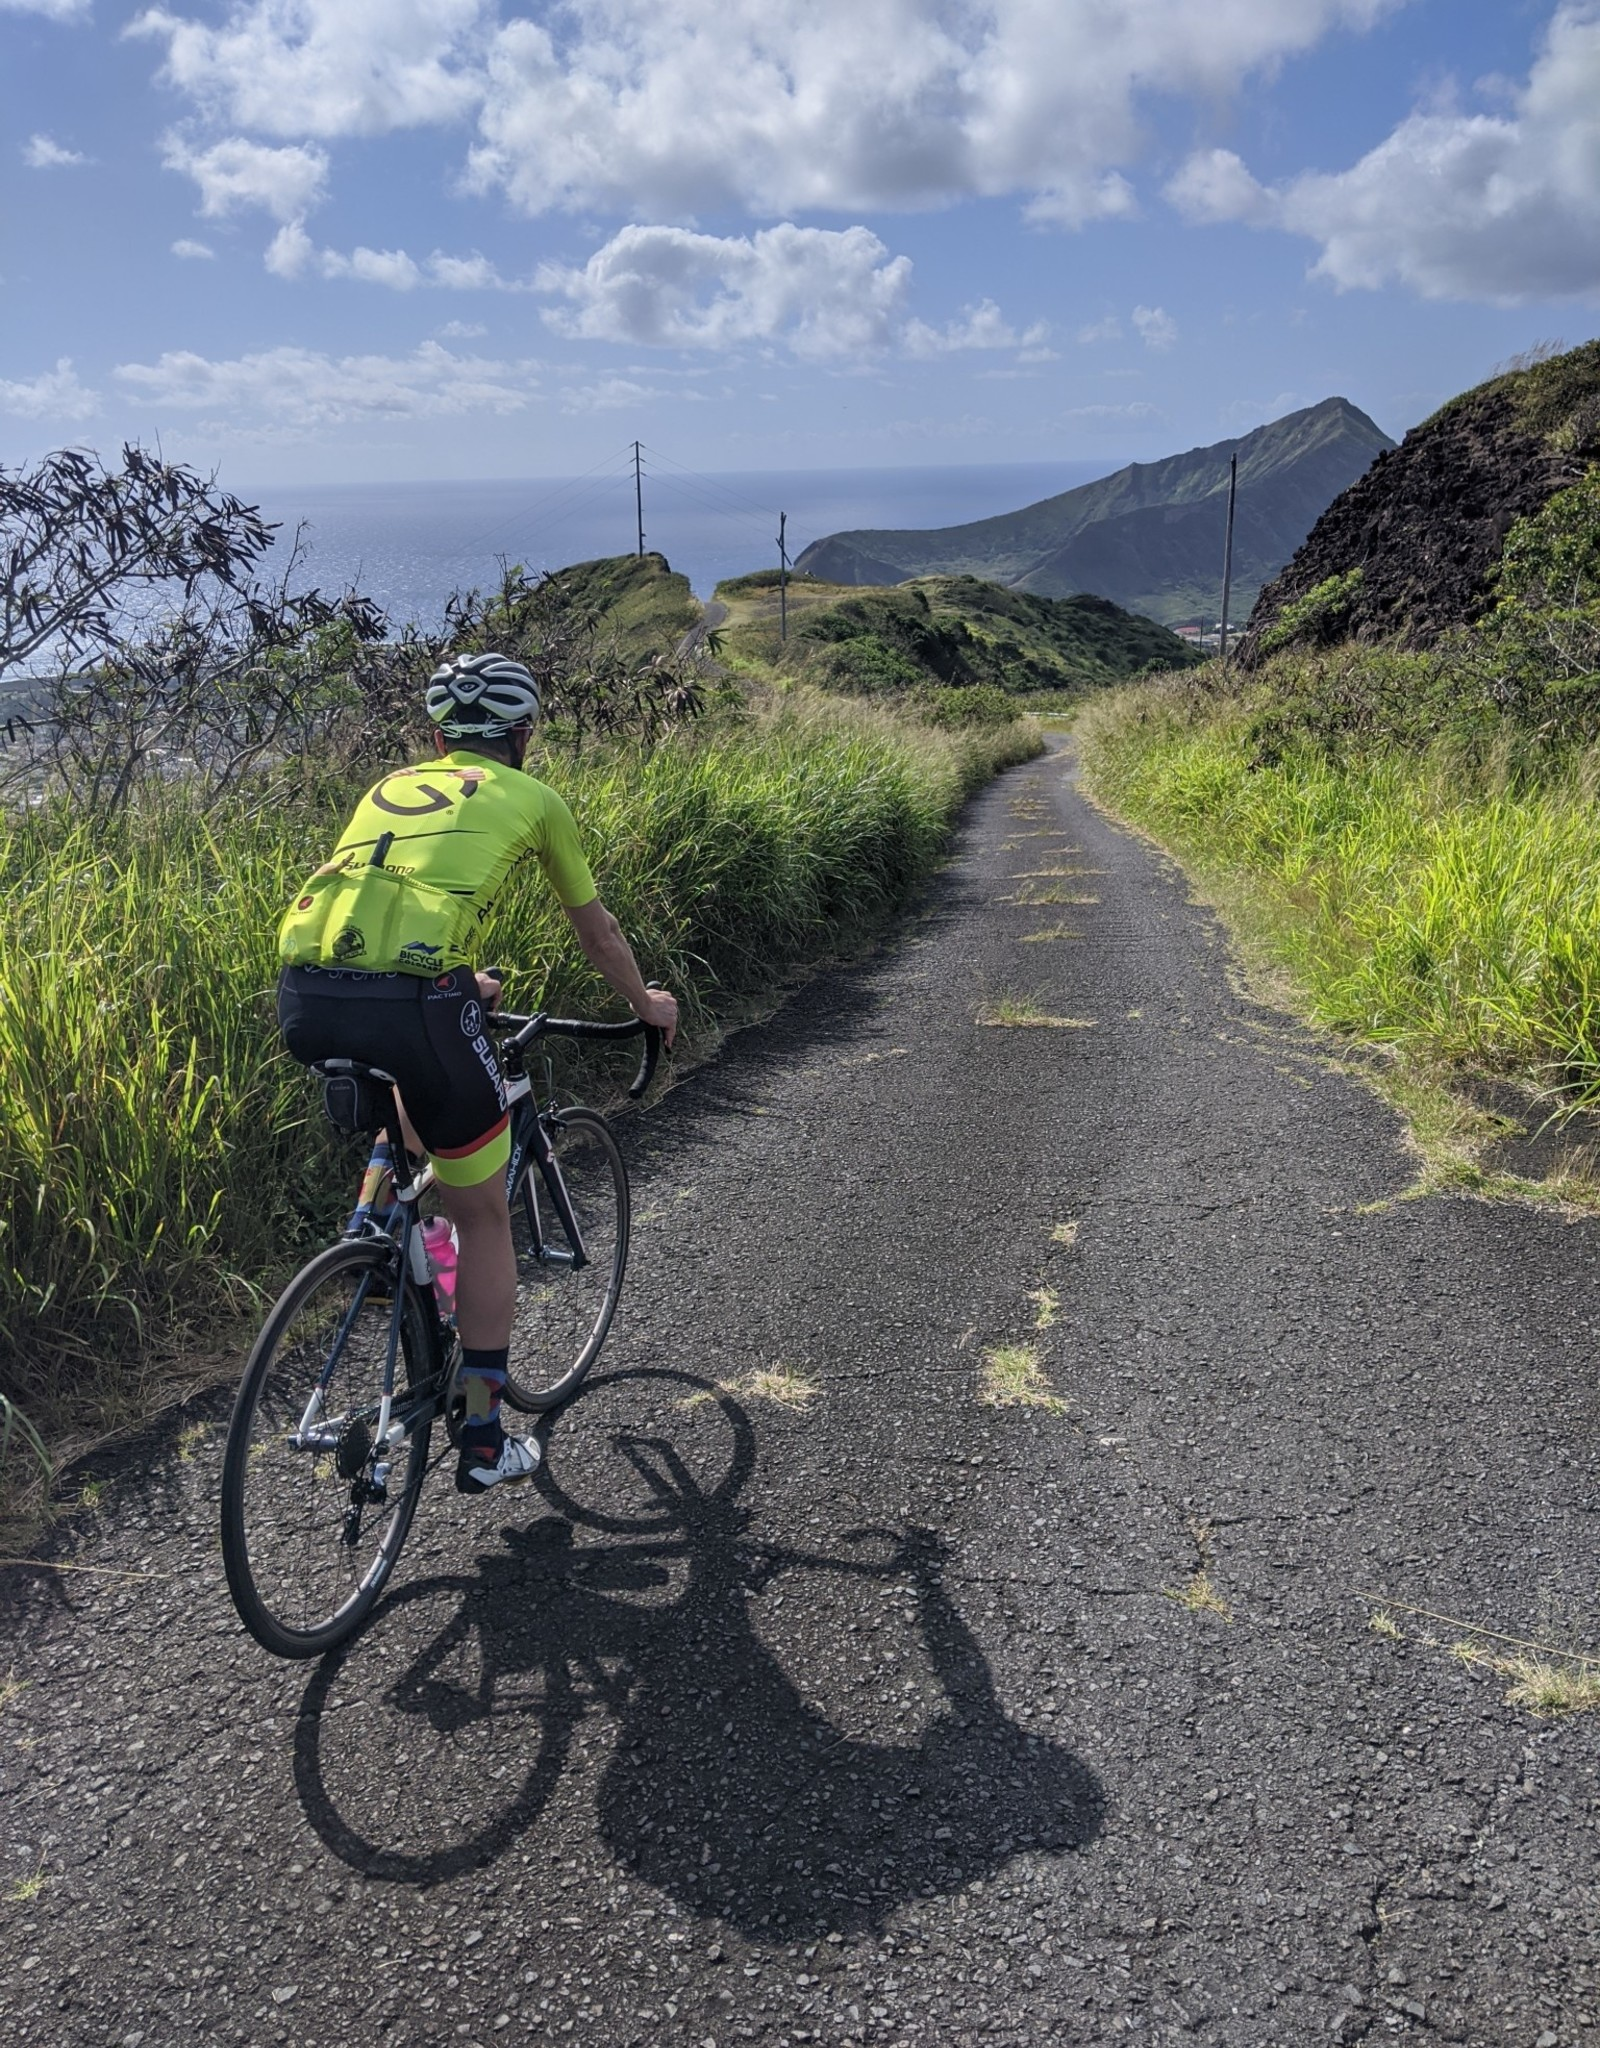 Veloguide Global Cycling Tours Postcard from Waimanalo Tour